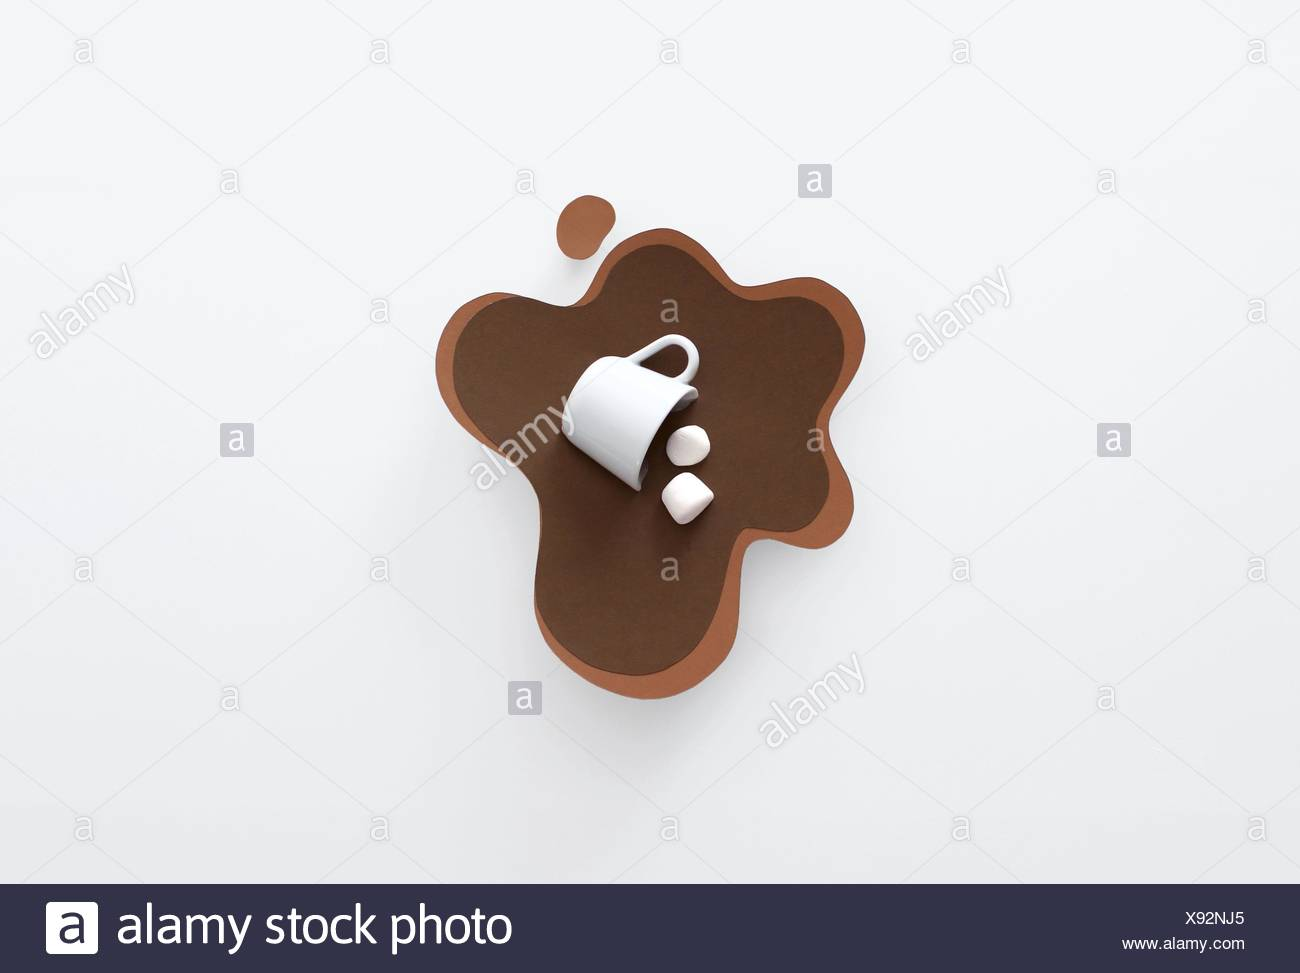 Conceptual mug knocked over, lying in a pool of paper made hot chocolate with marshmallows - Stock Image